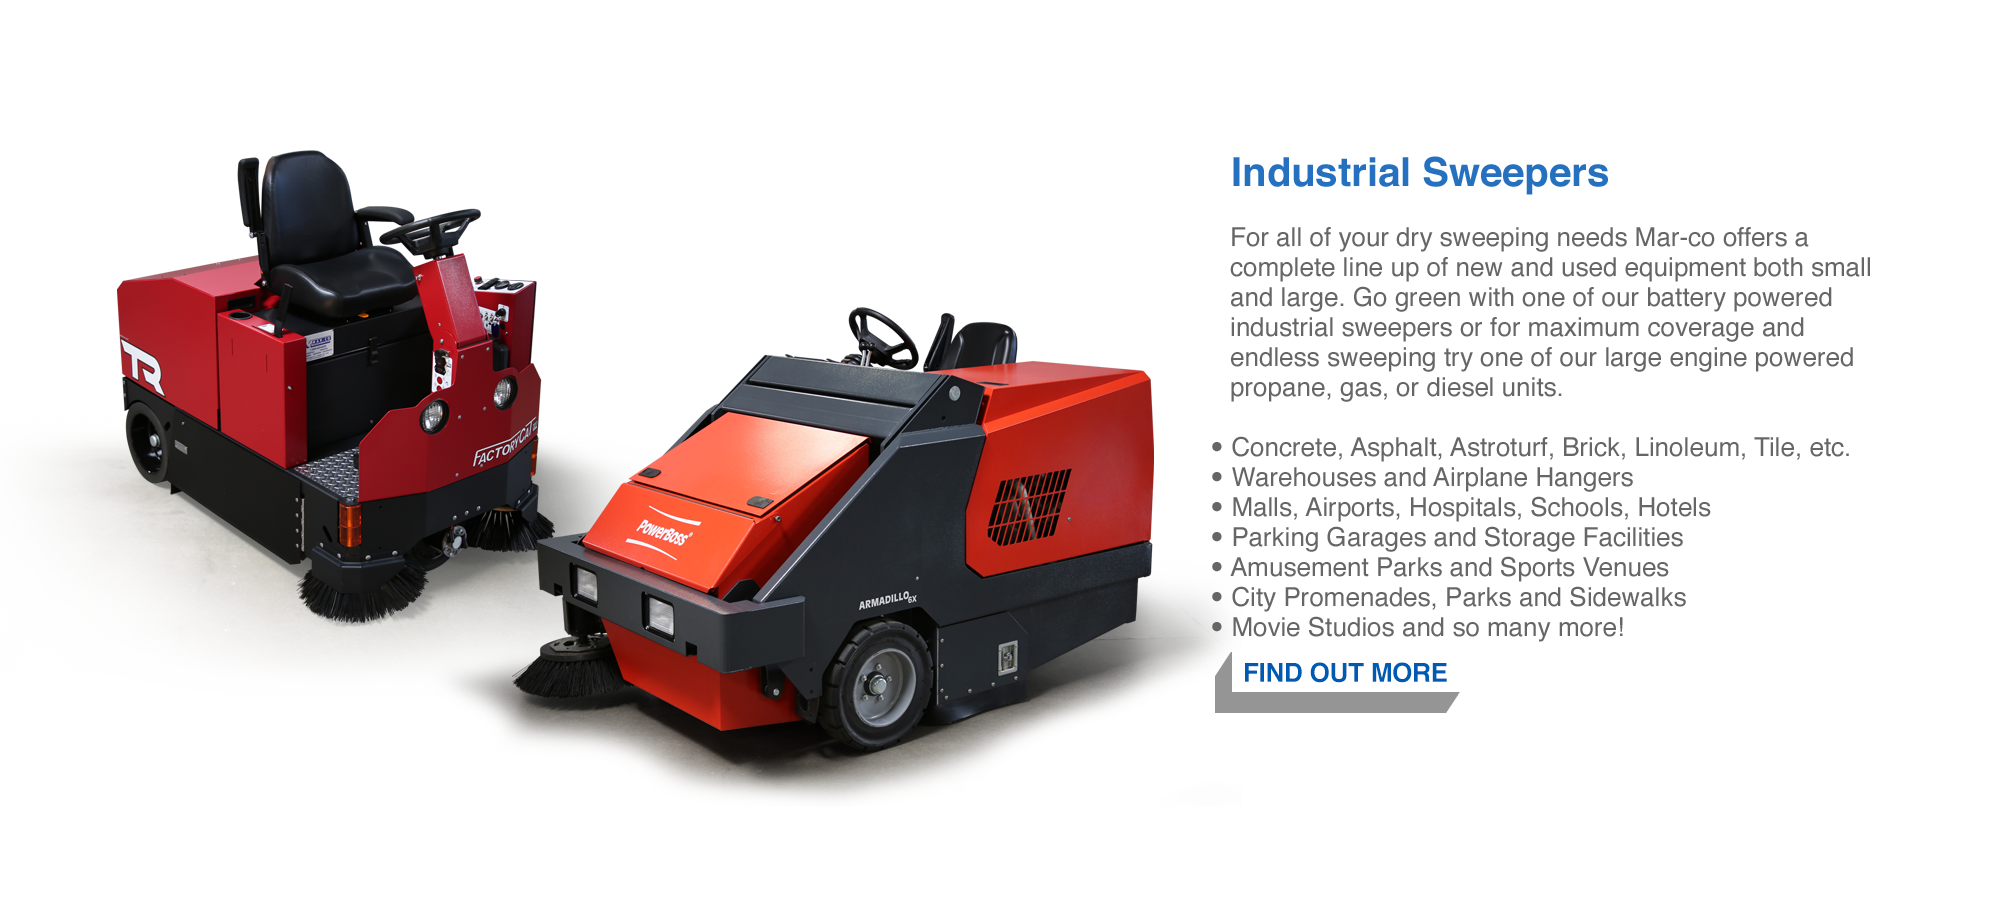 Floor tile cleaning machine hire